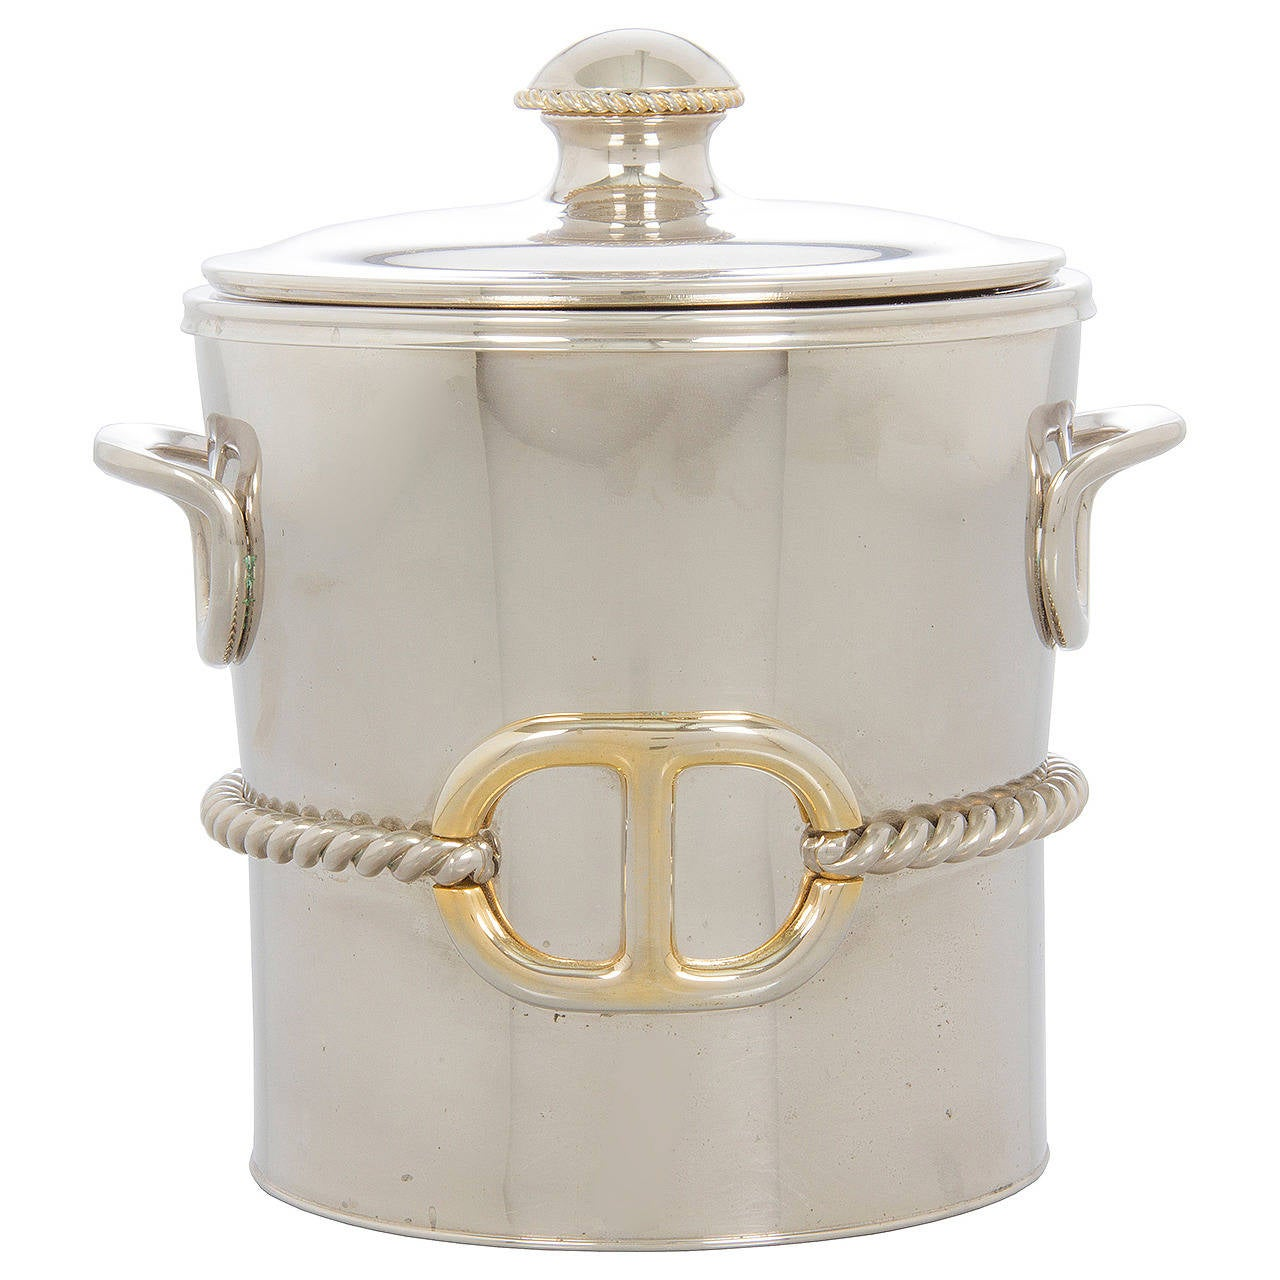 Vintage Gucci Ice Bucket at 1stdibs